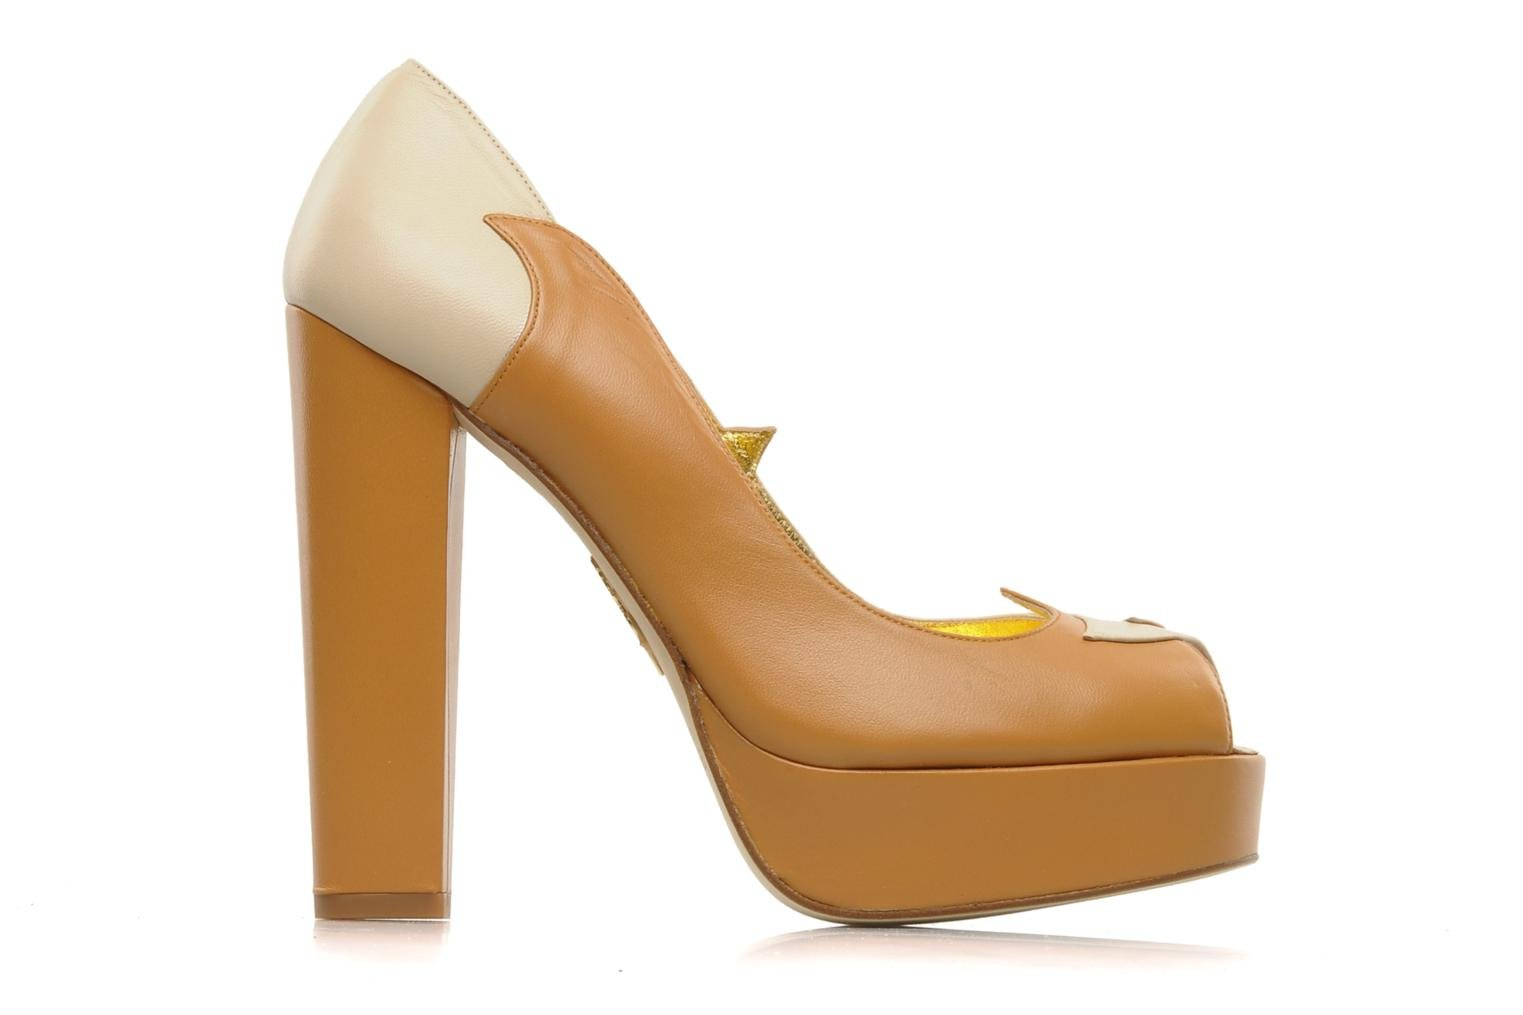 Carina Caramel Cream leather